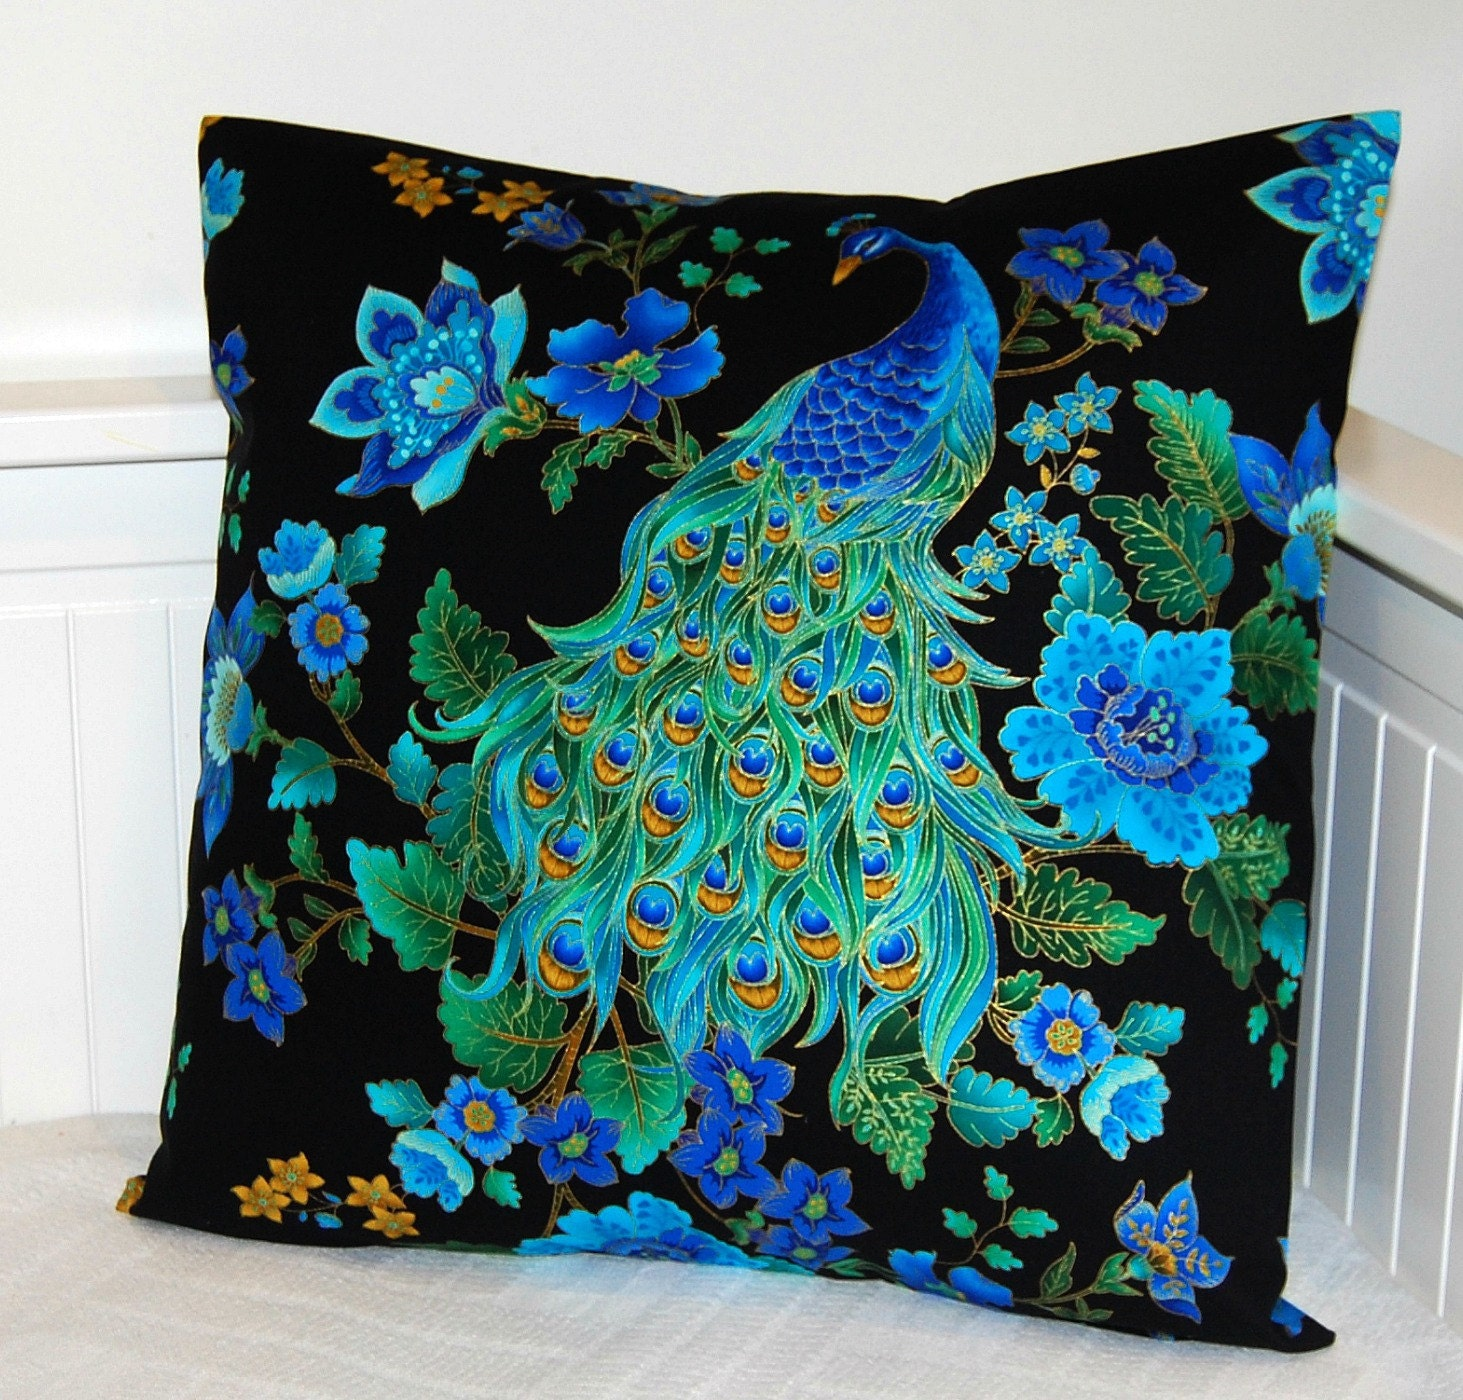 Peacock Blue Throw Pillows : peacock blue decorative pillow cover cushion cover 18 inch